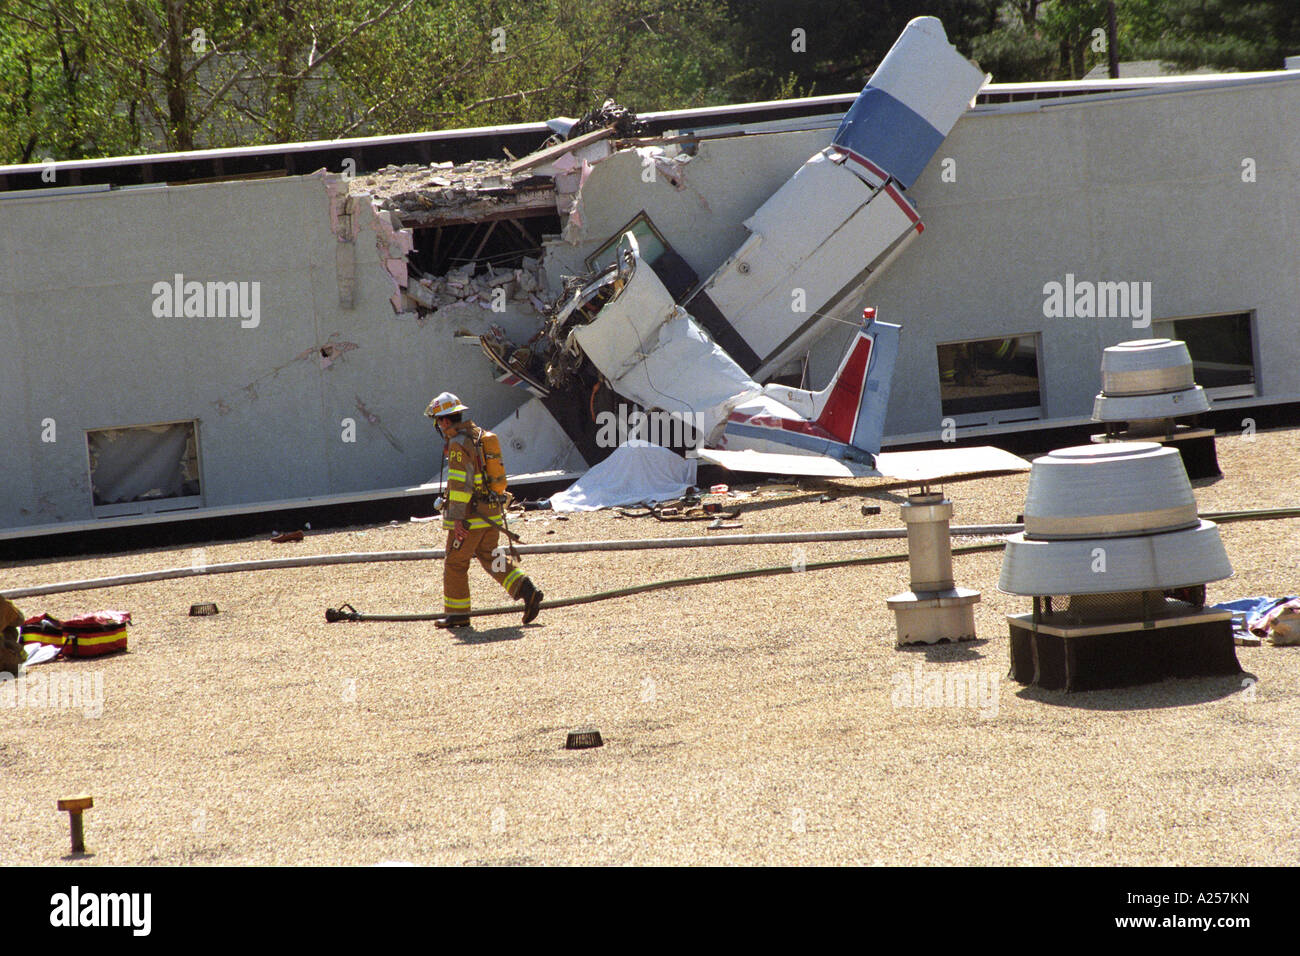 A plane crashed on the roof of University of Maryland Fire Rescue Institute  in College Park, Maryland killing all - Stock Image